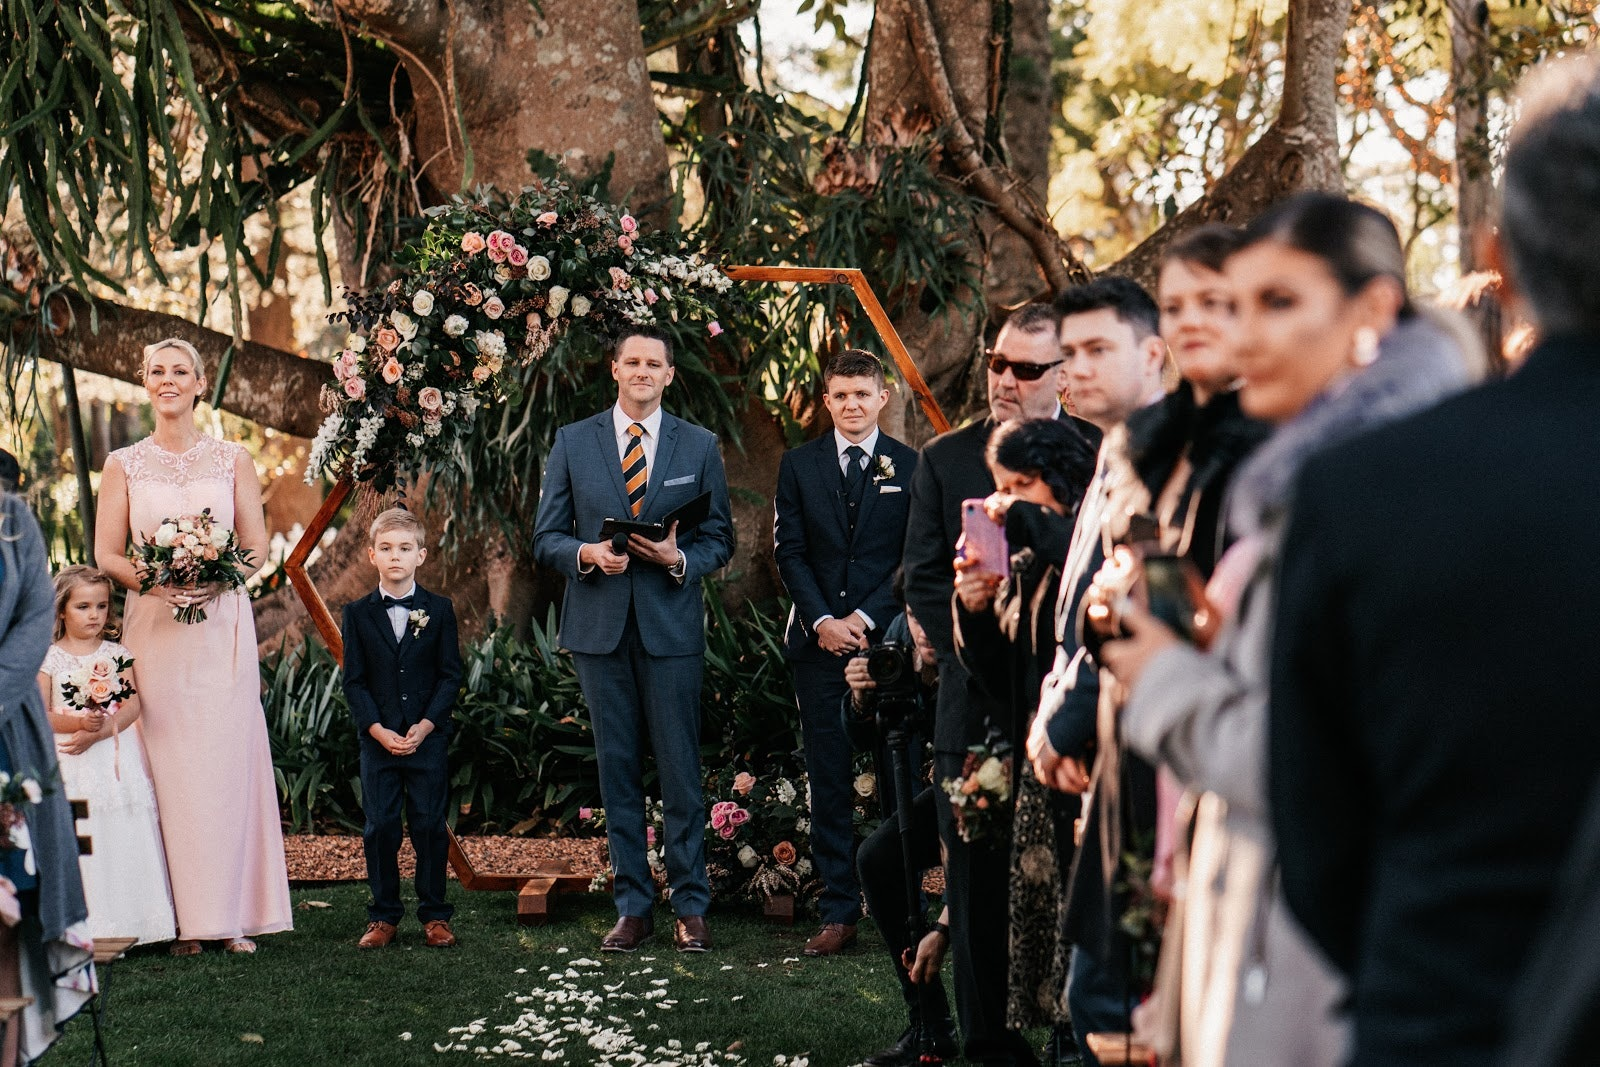 Groom standing at the end of the aisle with two children waiting for the bride to walk down